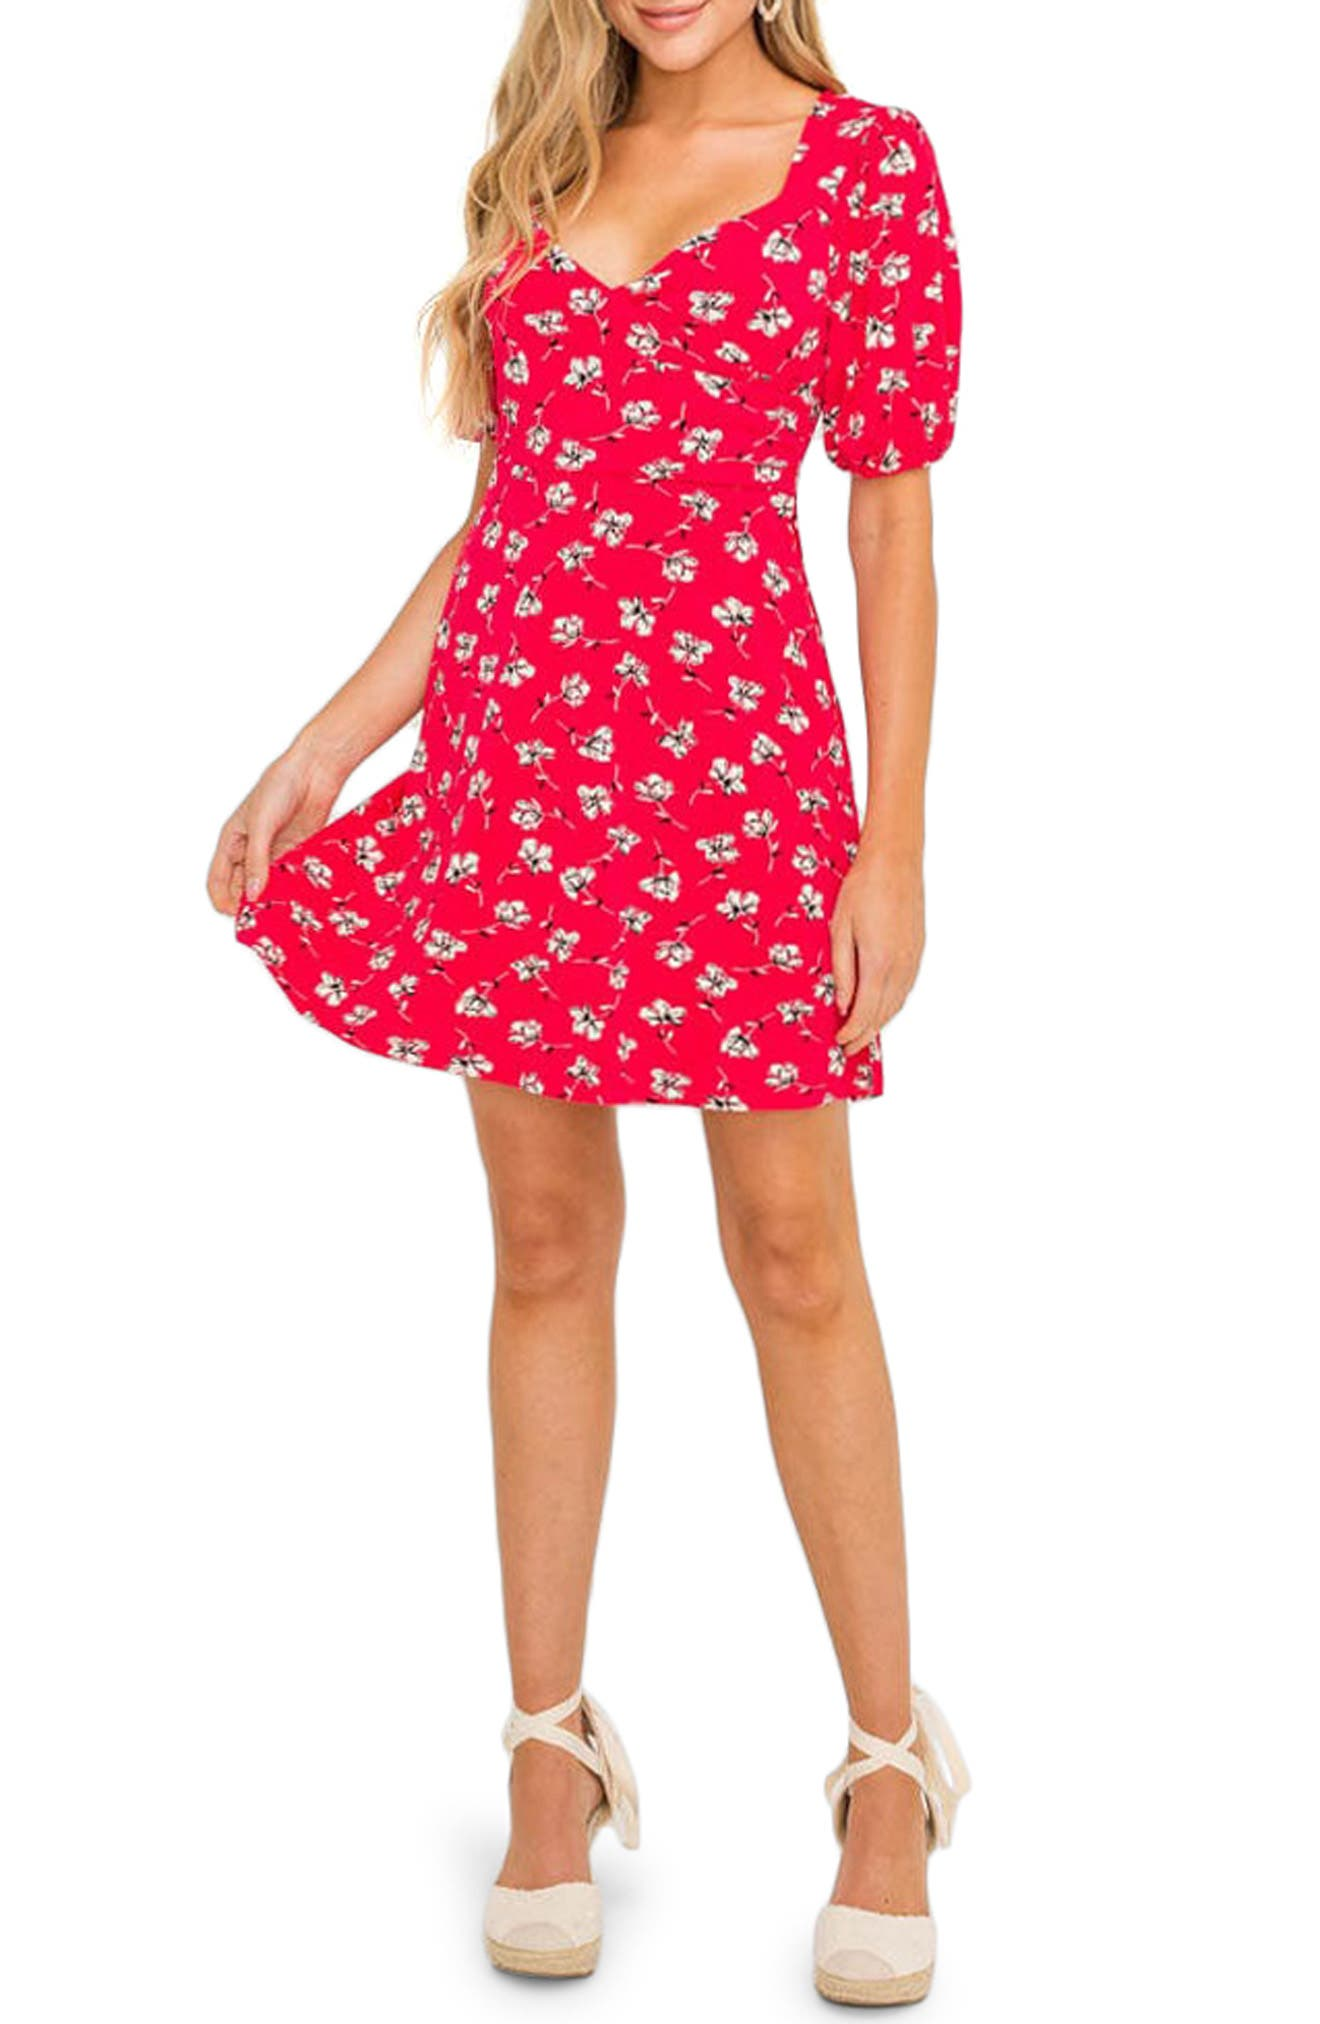 A sweet print enlivens this pretty, puff-sleeve frock styled with a cross-front bodice and a swingy skirt. Style Name: All In Favor Surplice Minidress. Style Number: 6032181 1. Available in stores.